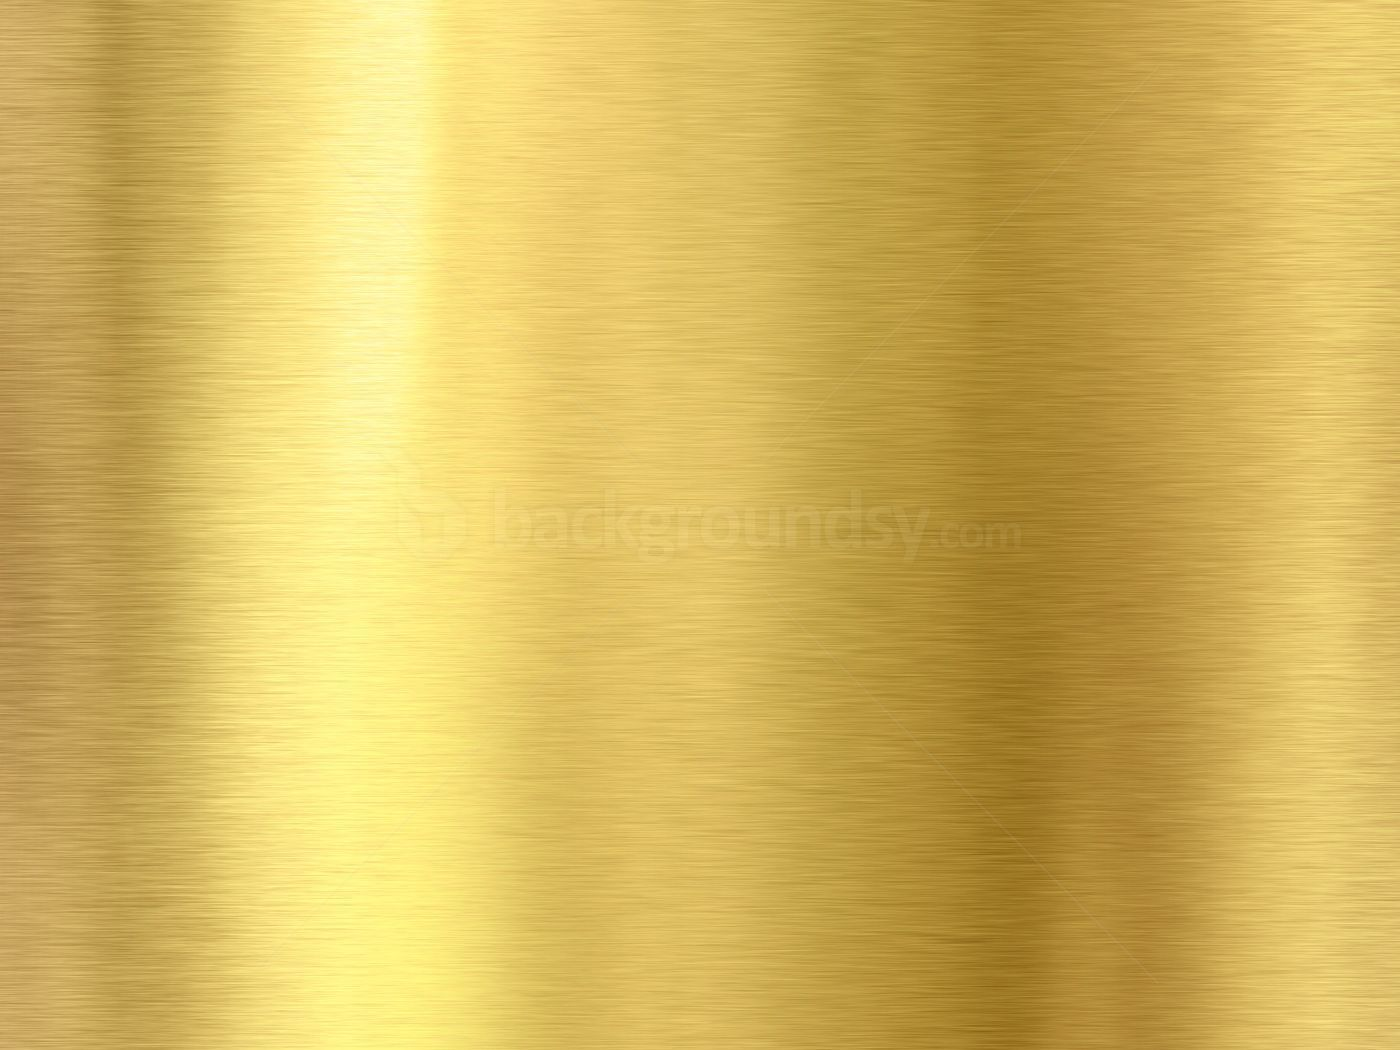 Gold Backgrounds Image Wallpaper Cave In 2019 Blue